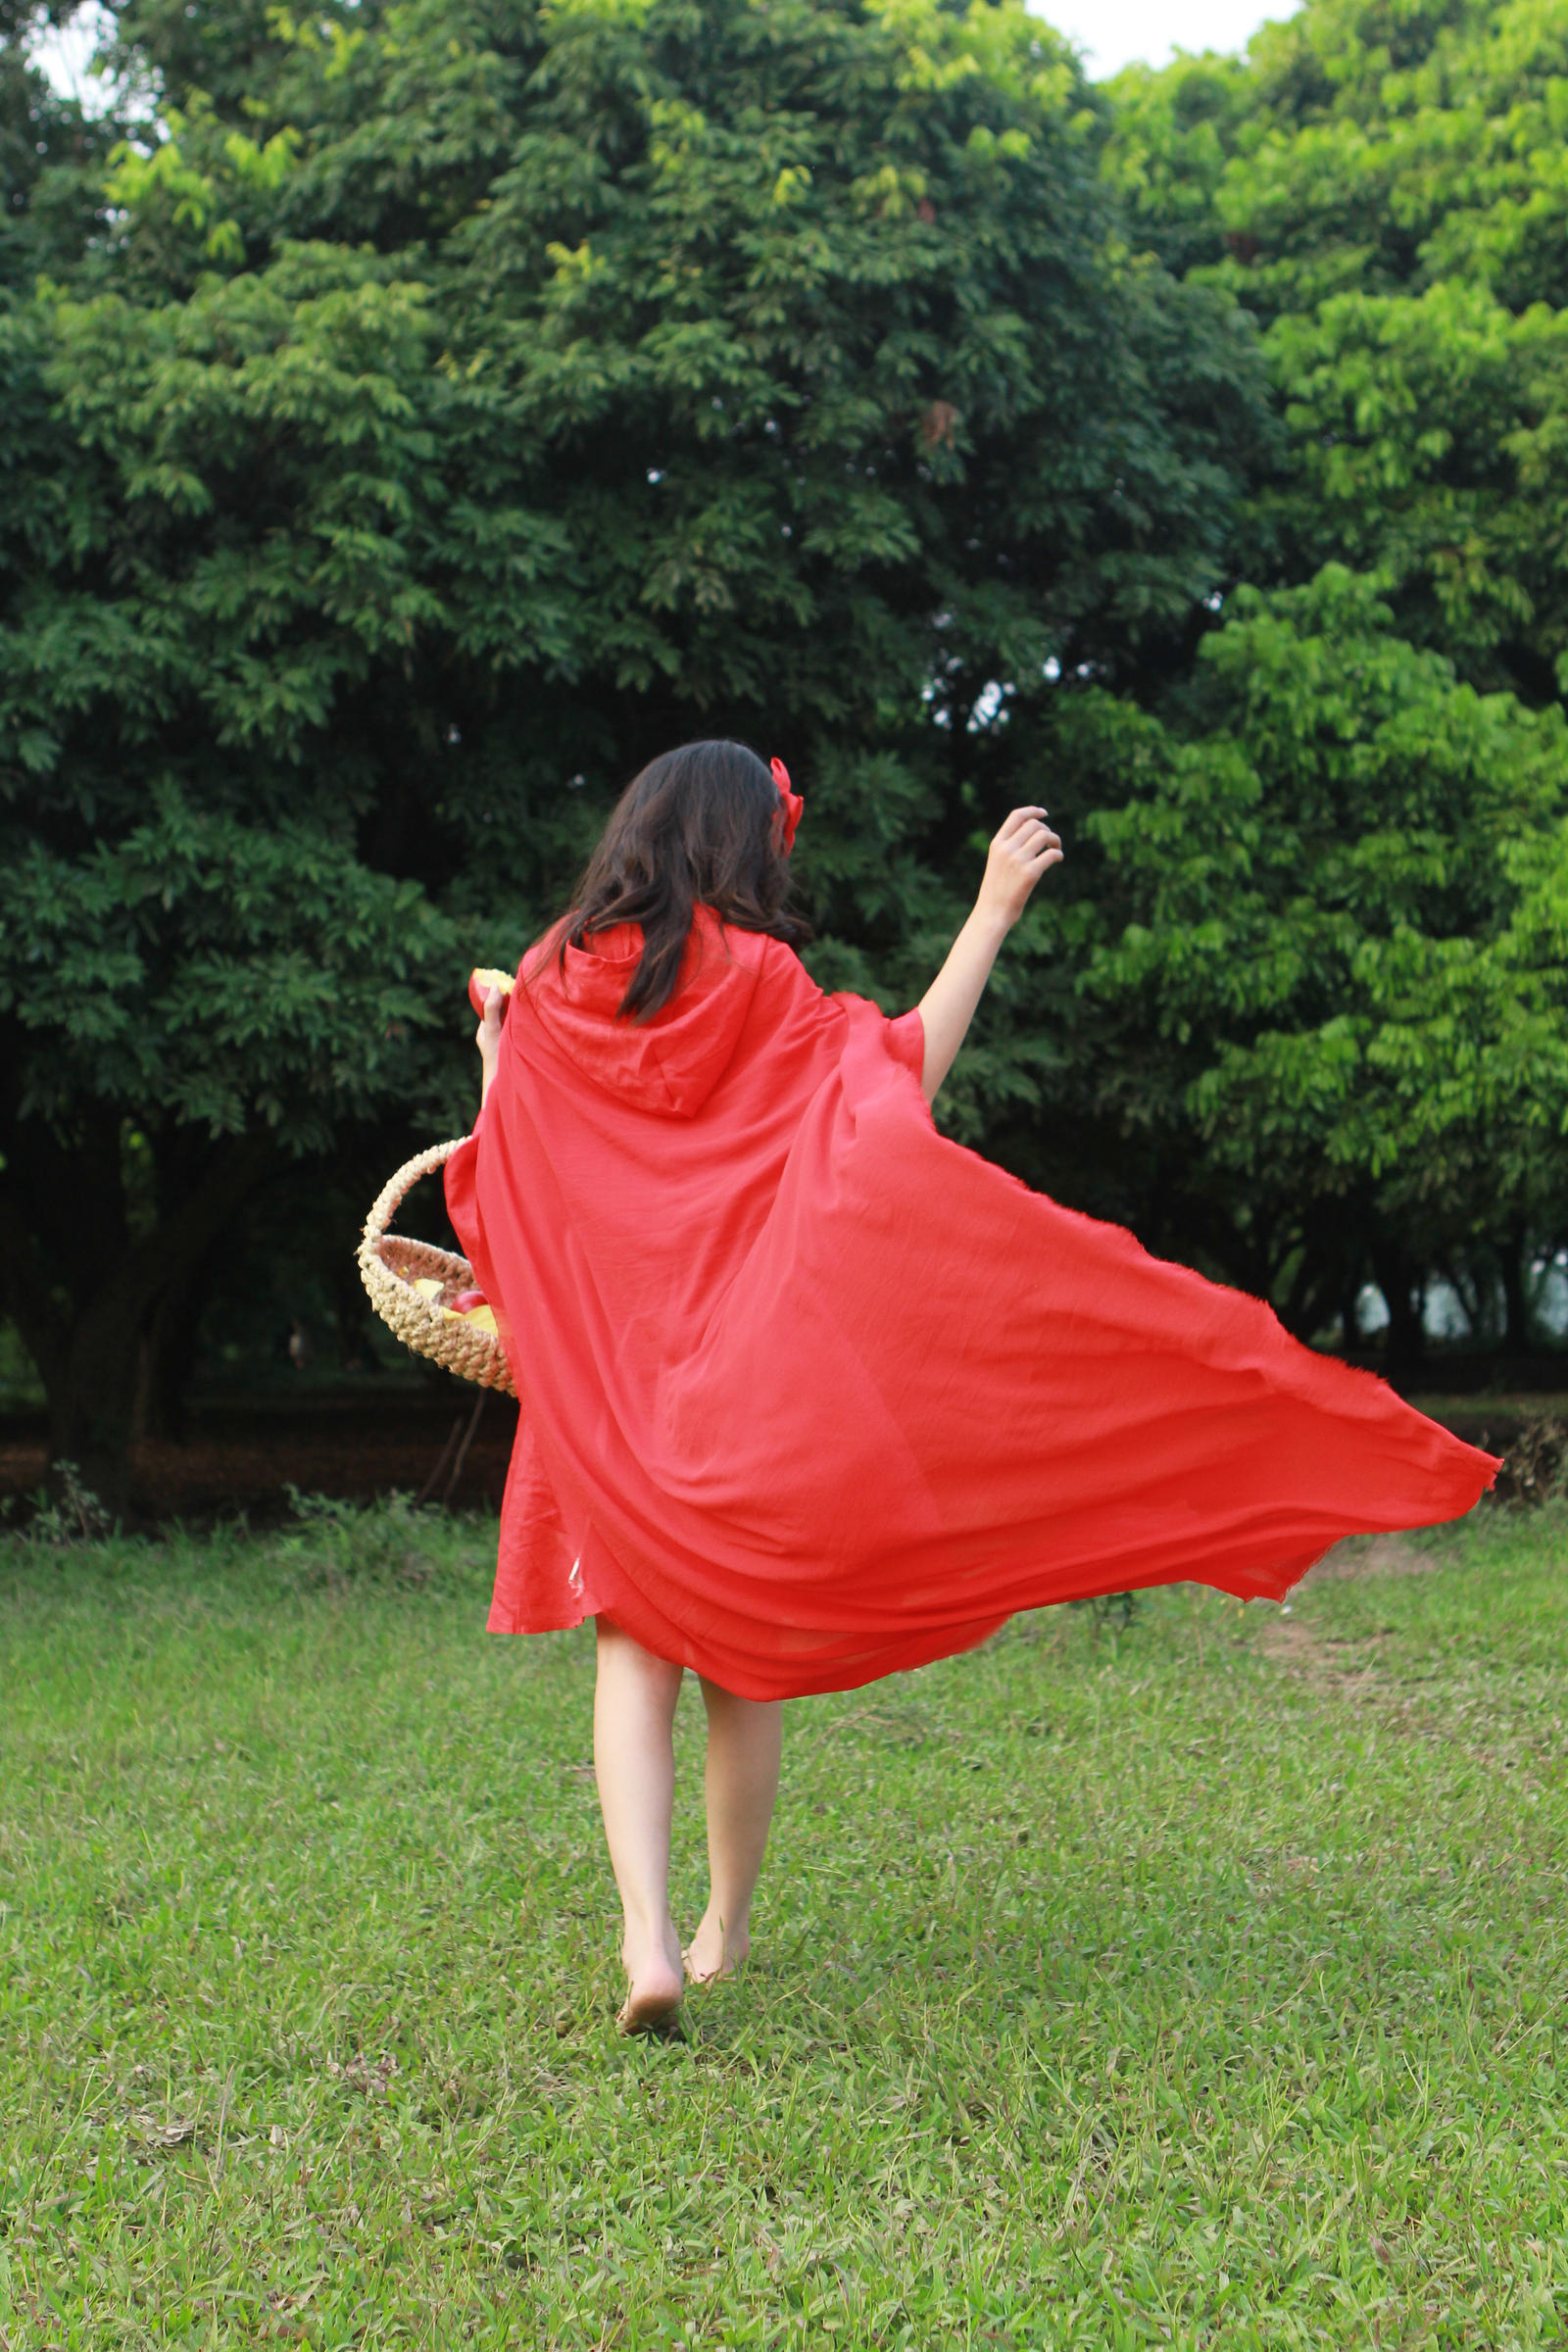 Model 21 (Red Riding Hood)